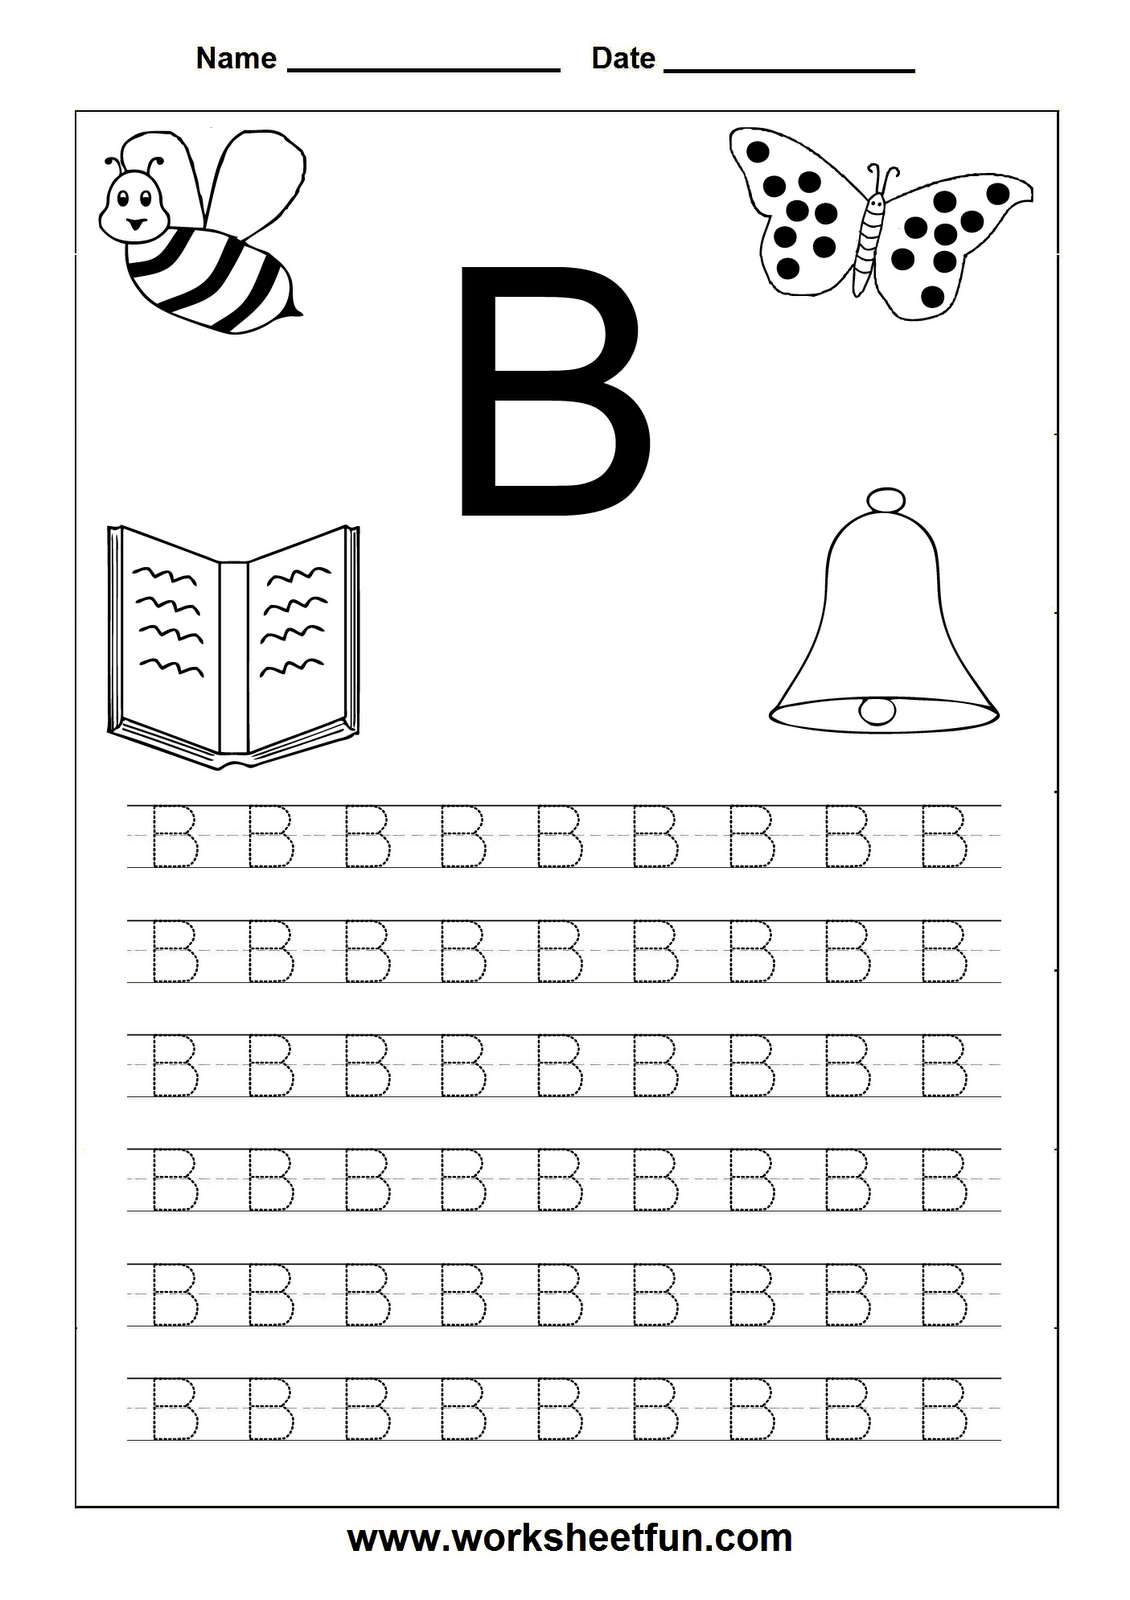 math worksheet : 1000 images about alphabet on pinterest  alphabet worksheets  : Free Letter Worksheets For Kindergarten